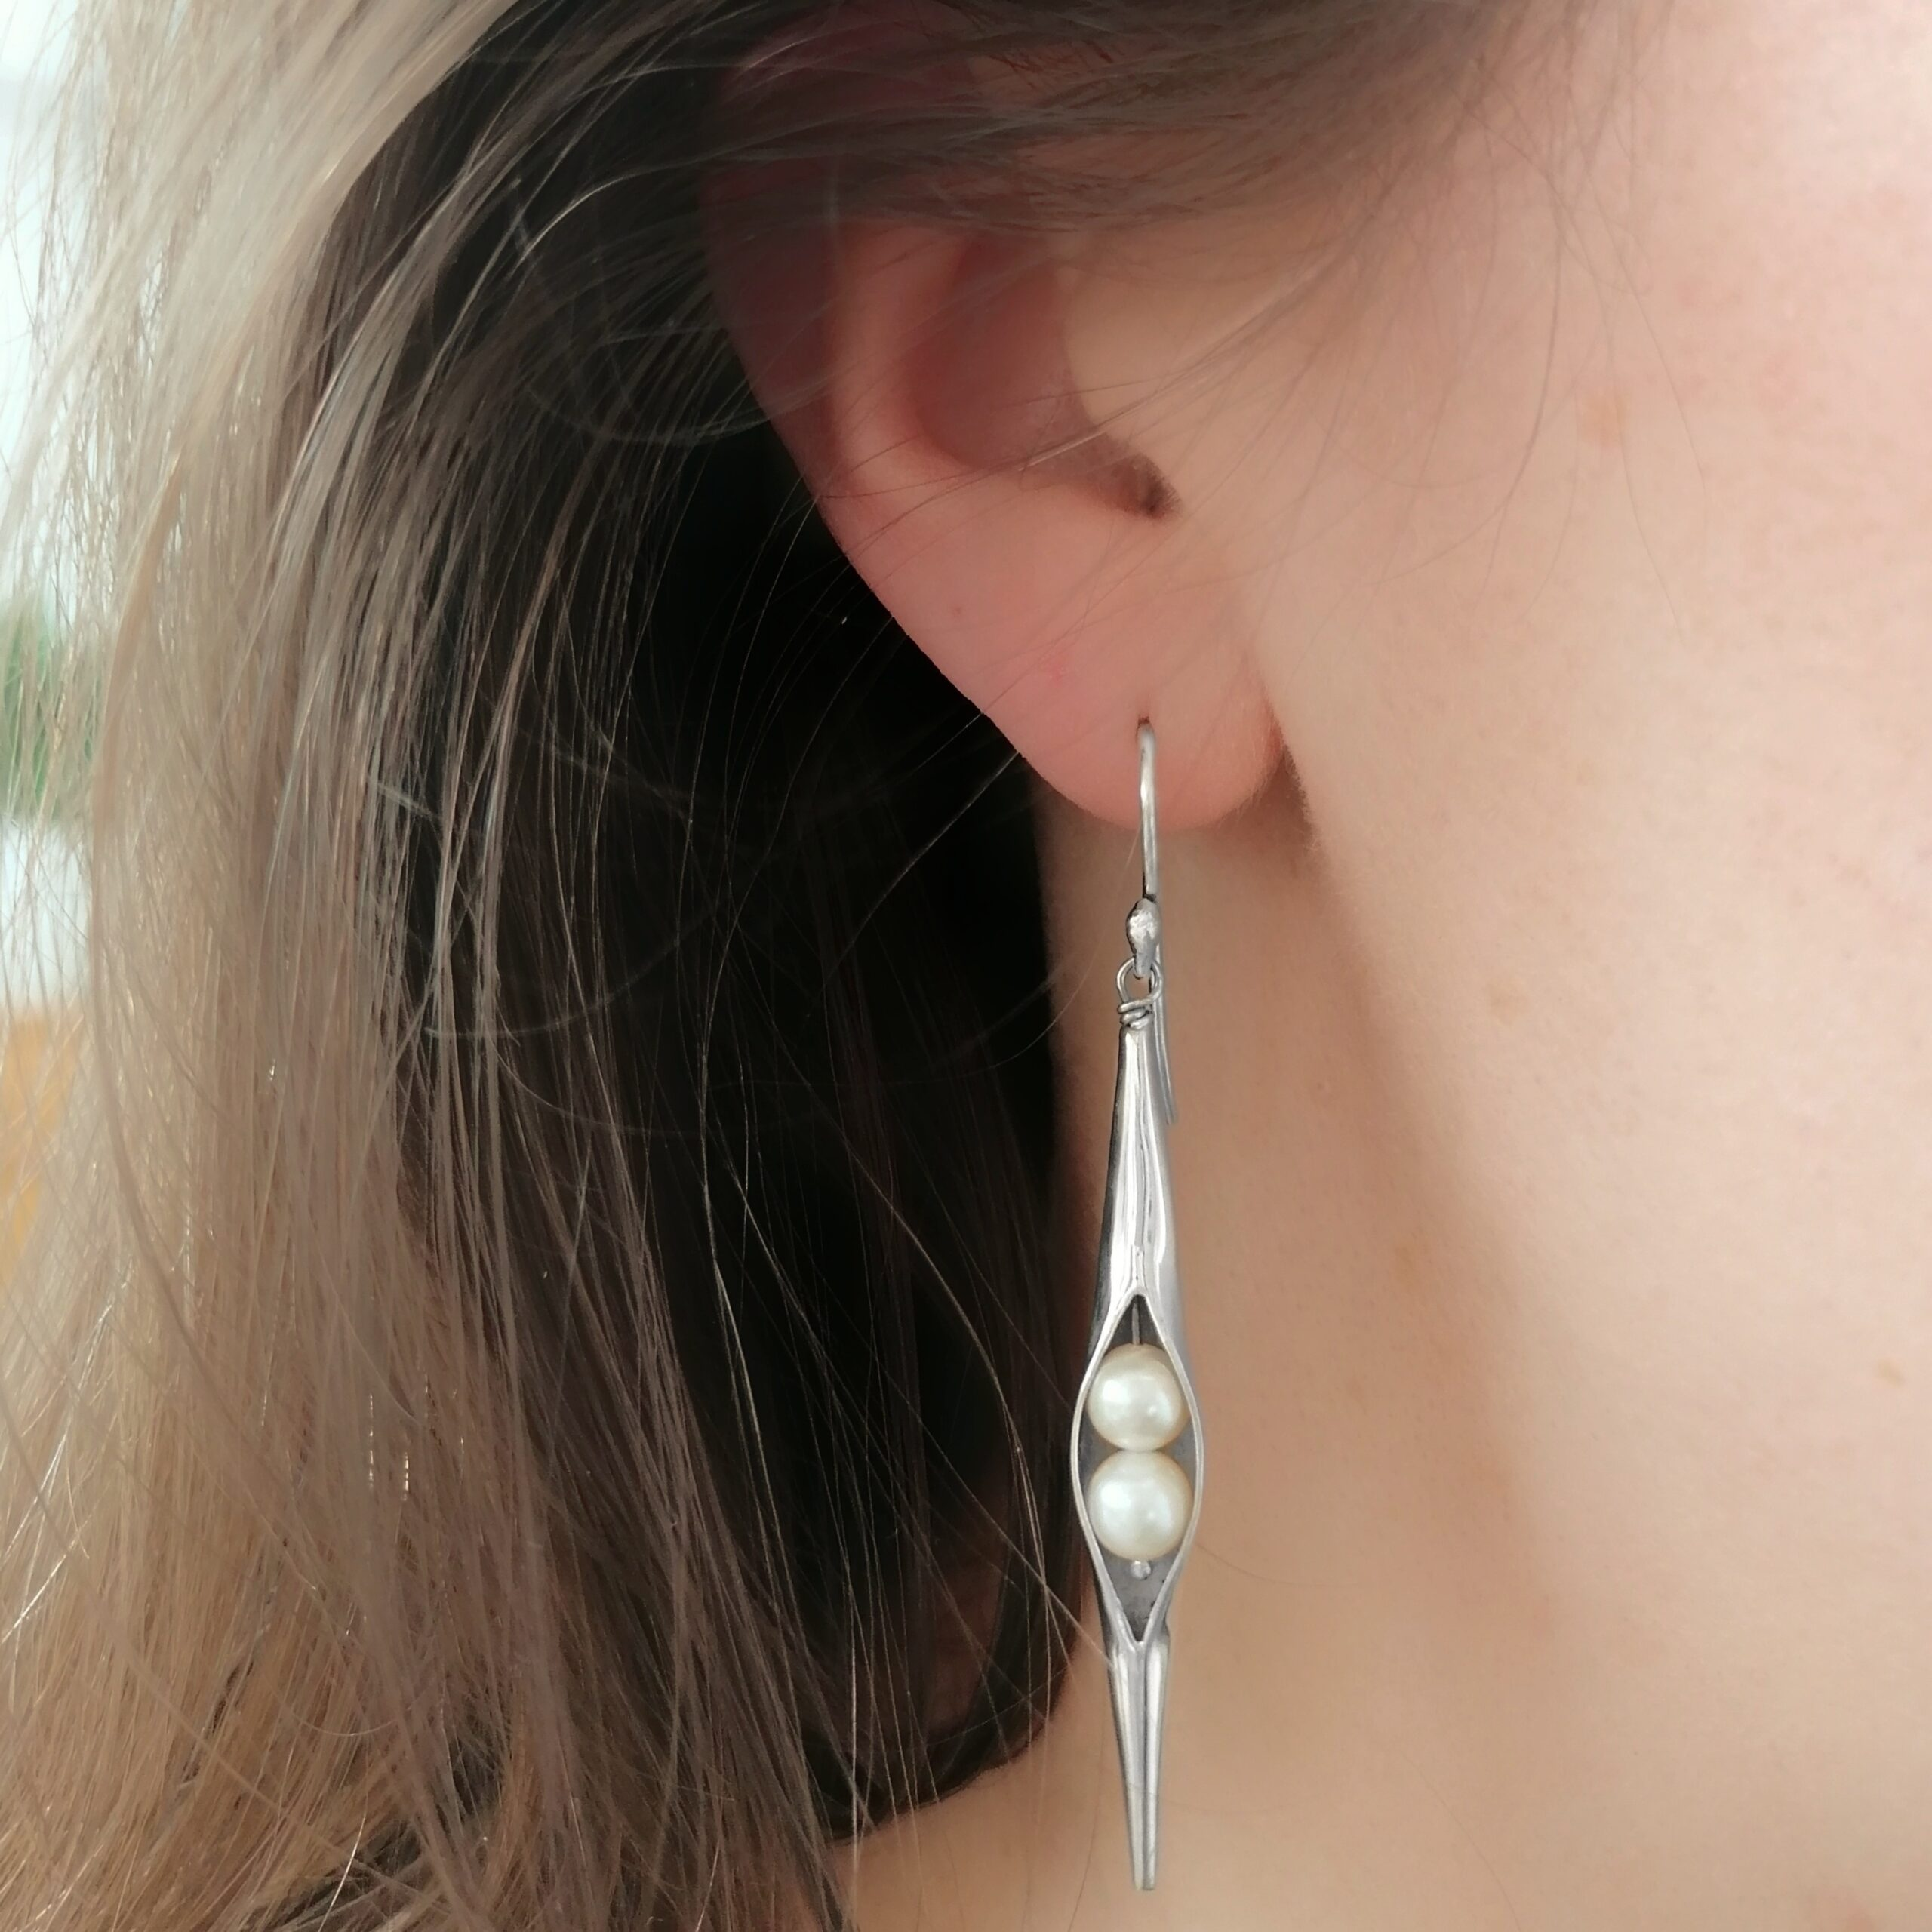 Black Pearl Seedpod Earrings, ethical jewellery handcrafted in sterling silver by Caraliza Designs